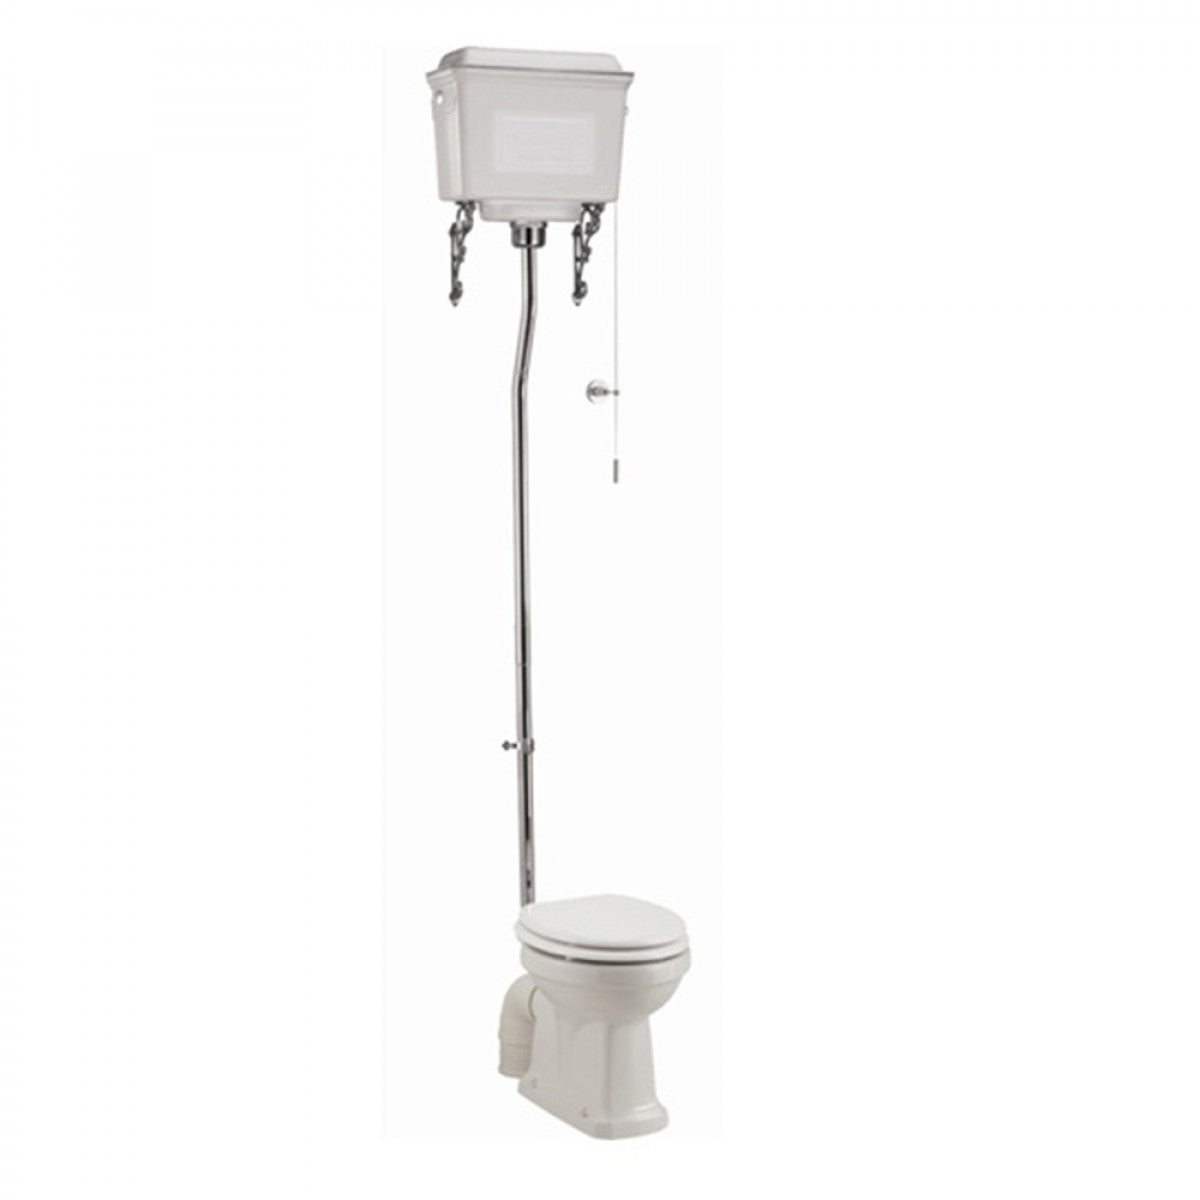 BURLINGTON HIGH LEVEL TOILET, WHITE ALUMINIUM CISTERN & SOFT CLOSE SEAT - 670MM PROJECTION